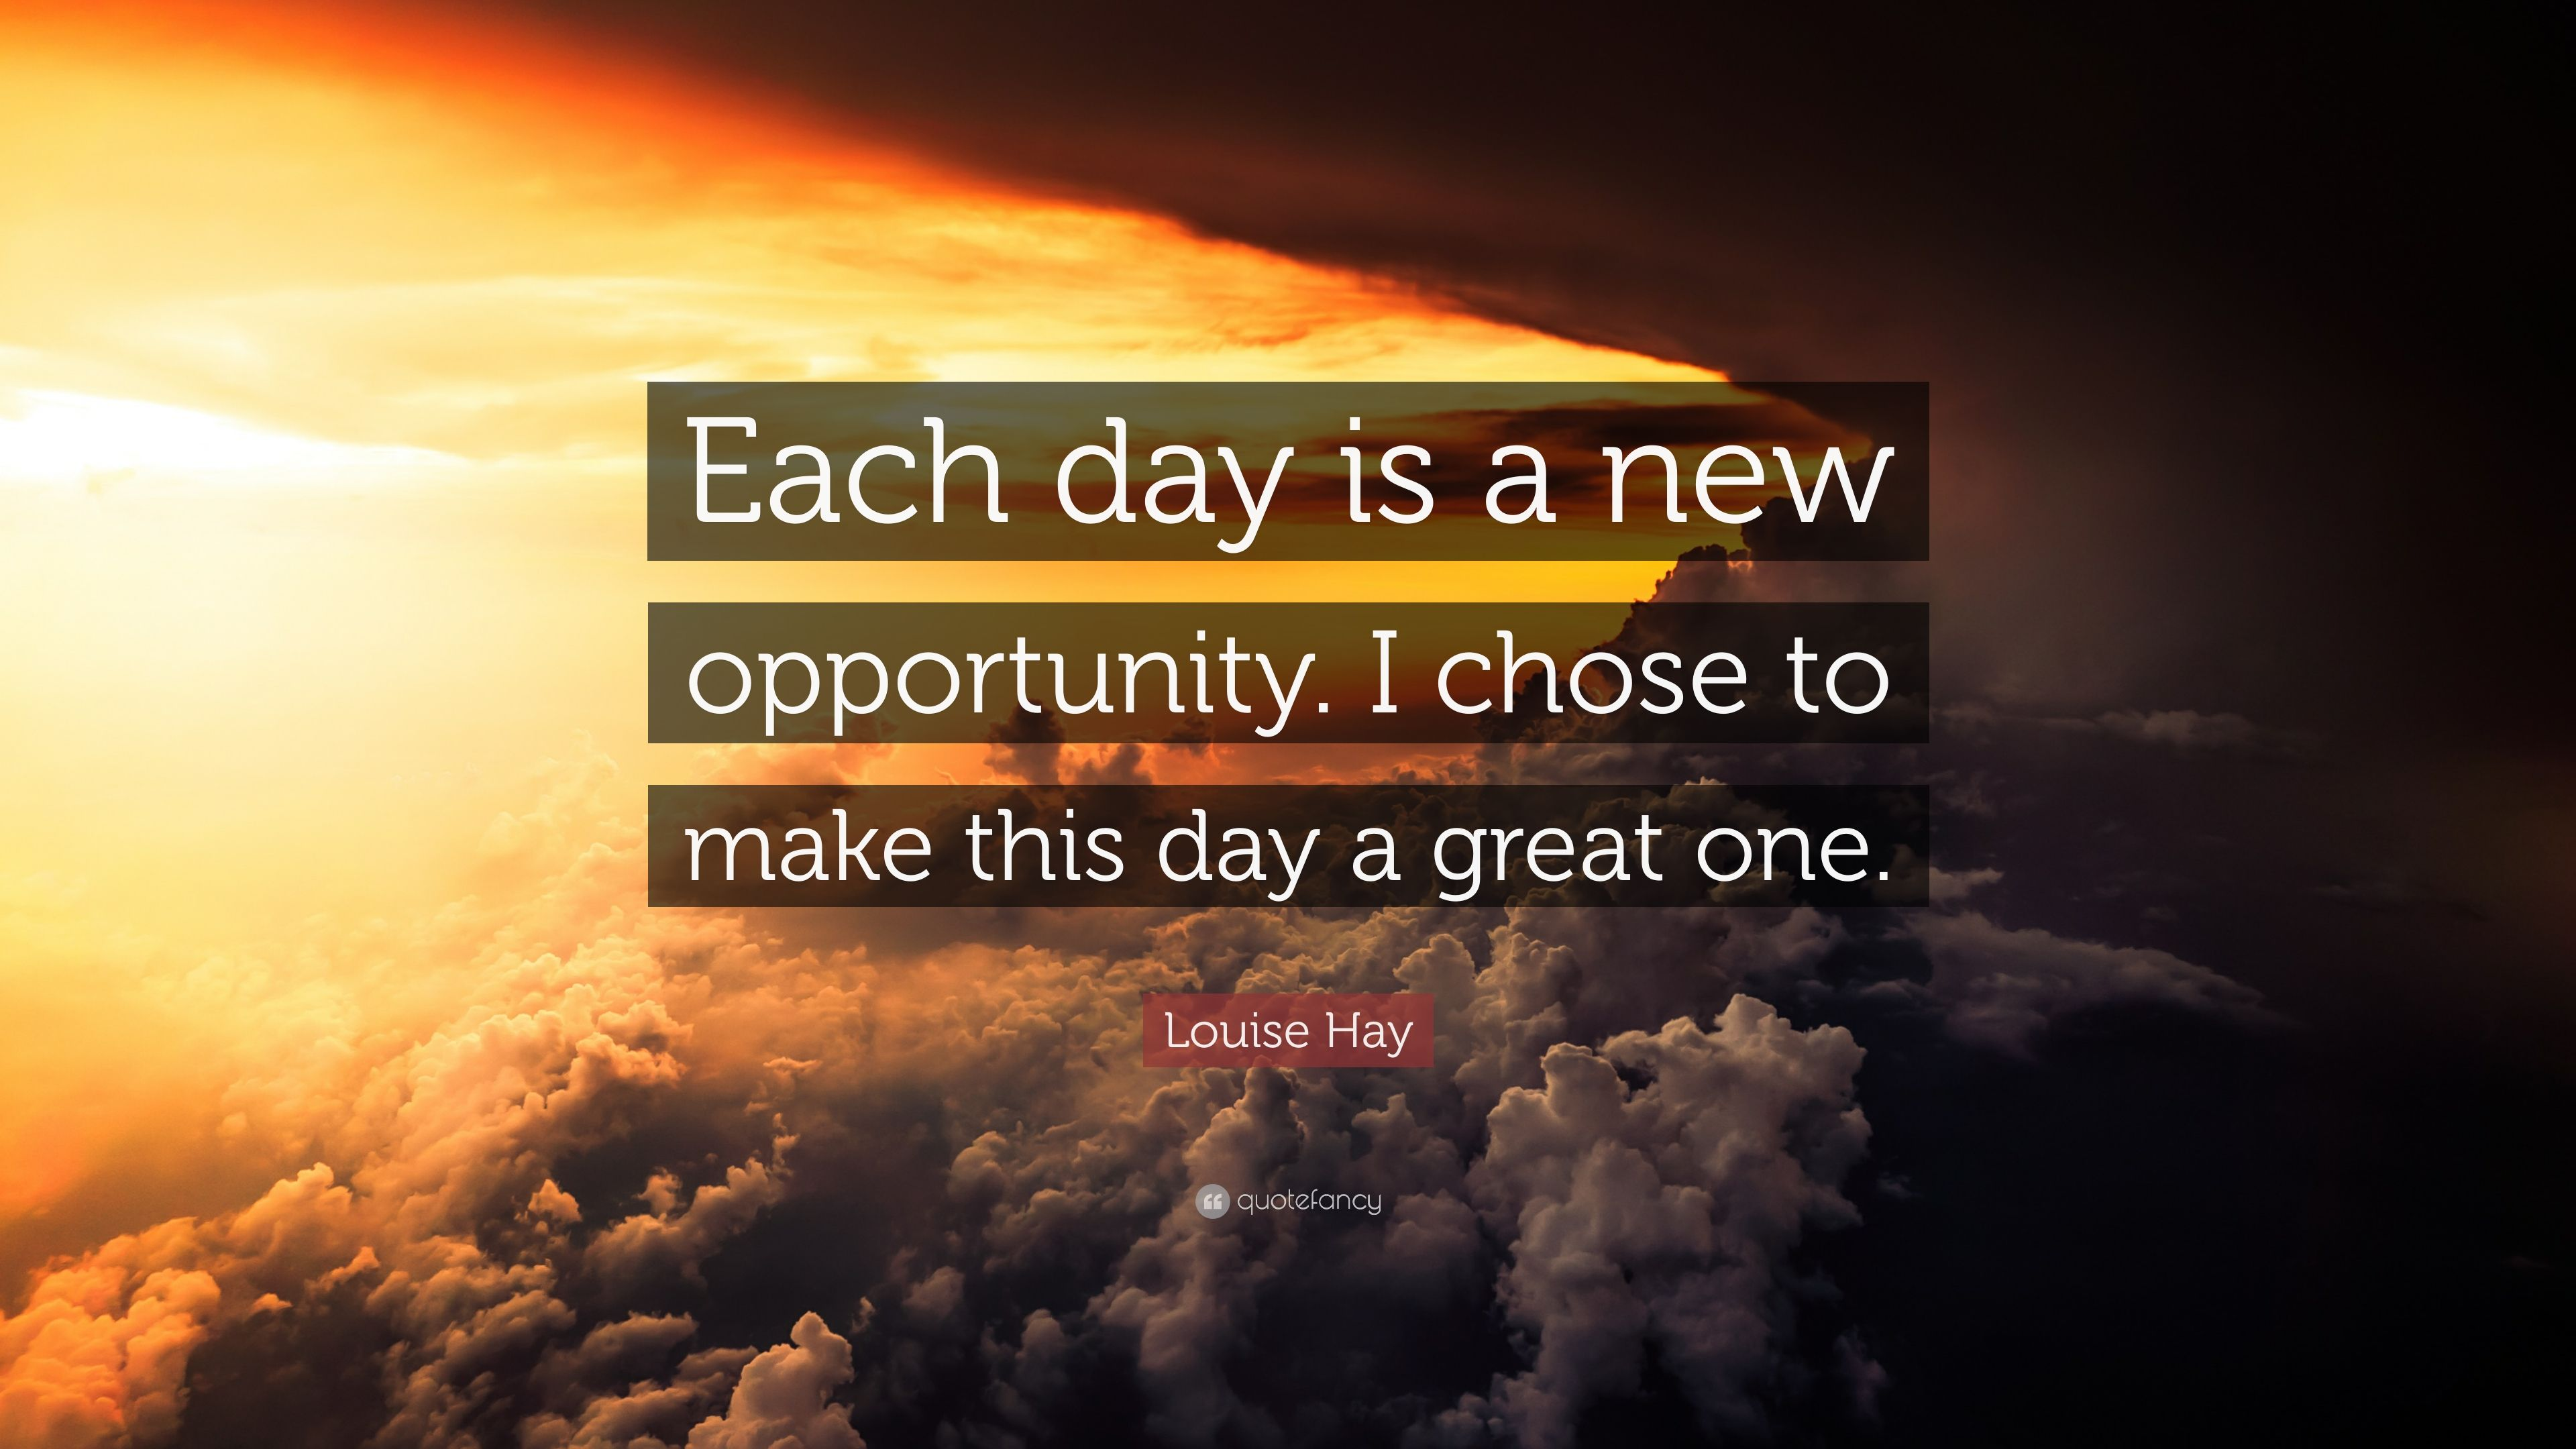 Conor Mcgregor Quote Wallpaper Louise Hay Quote Each Day Is A New Opportunity I Chose